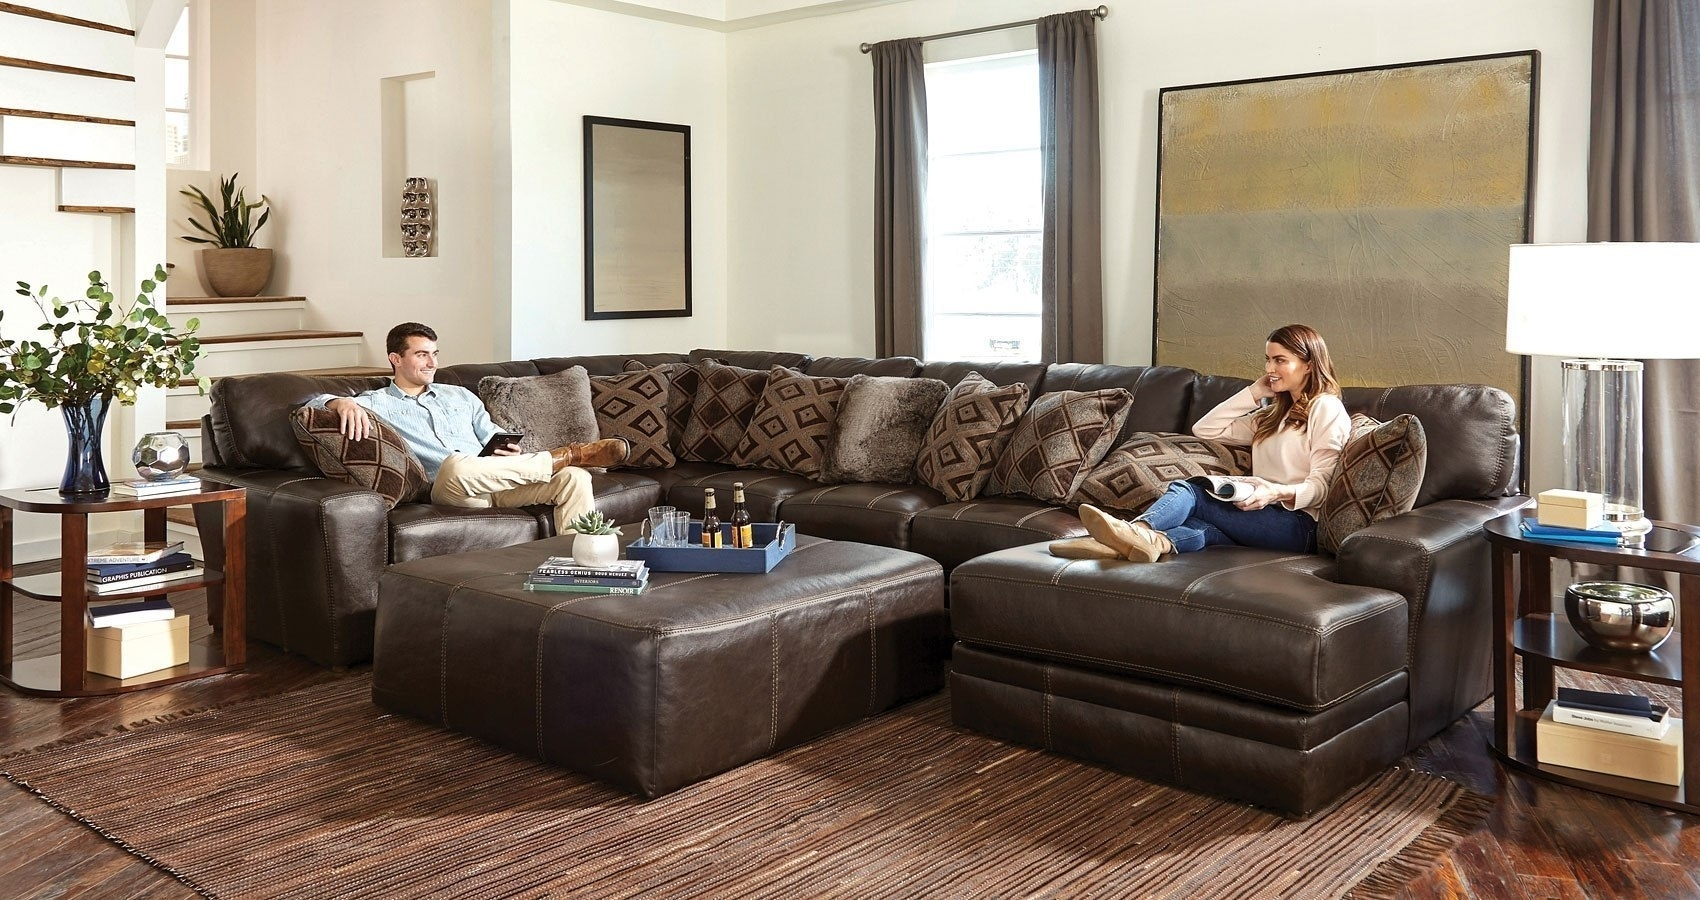 Denali Modular Sectional (Chocolate) Jackson Furniture, 1 Reviews With Regard To Denali Charcoal Grey 6 Piece Reclining Sectionals With 2 Power Headrests (View 17 of 25)